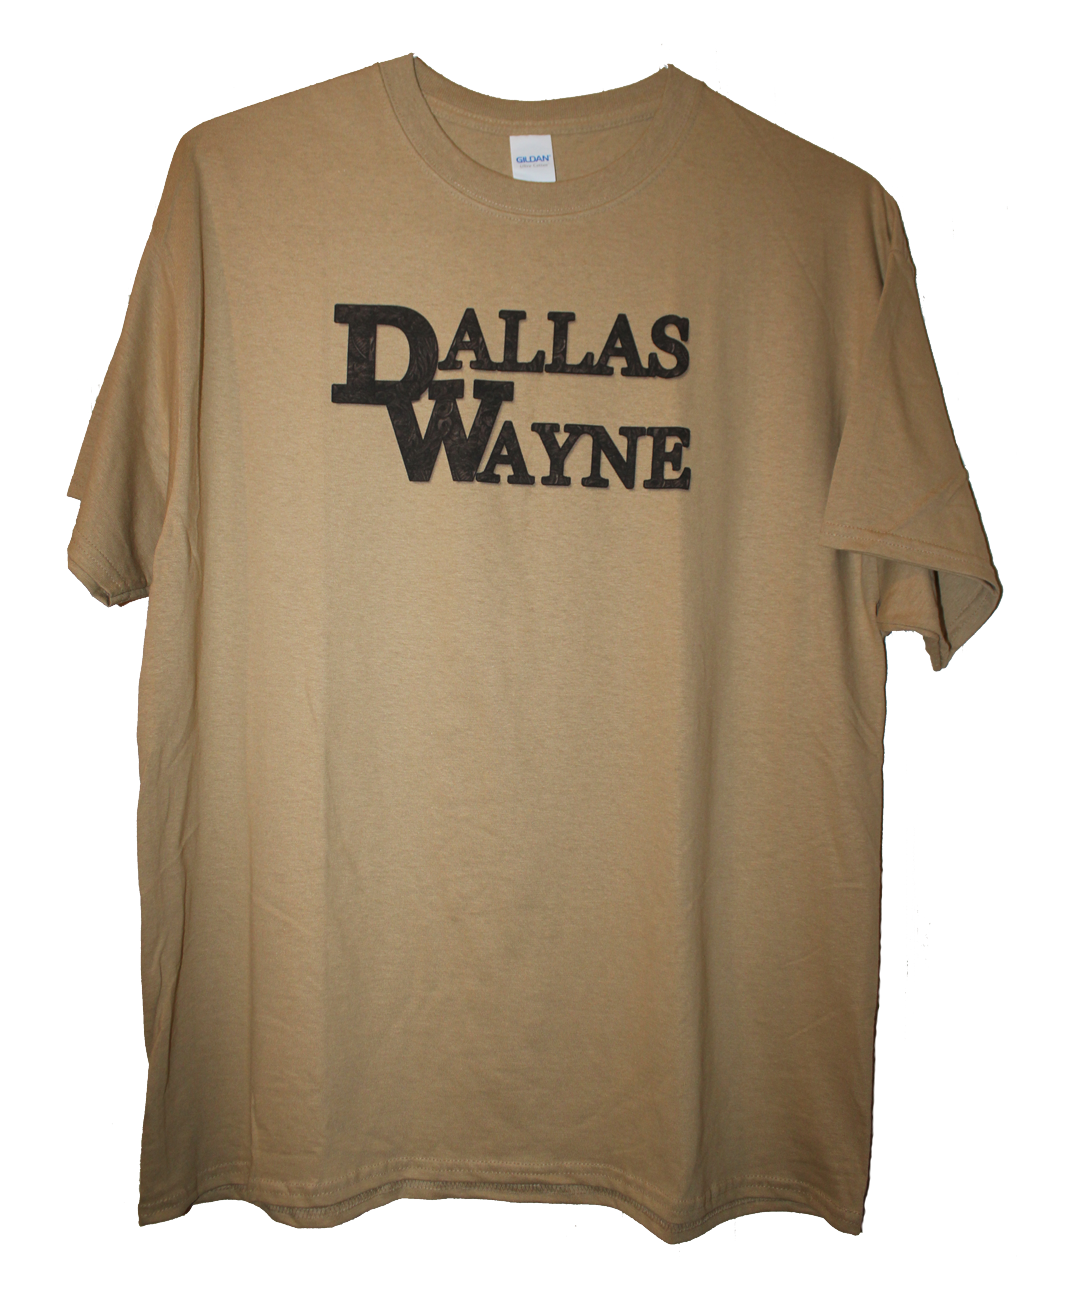 Dallas Wayne T-shirt, Tan